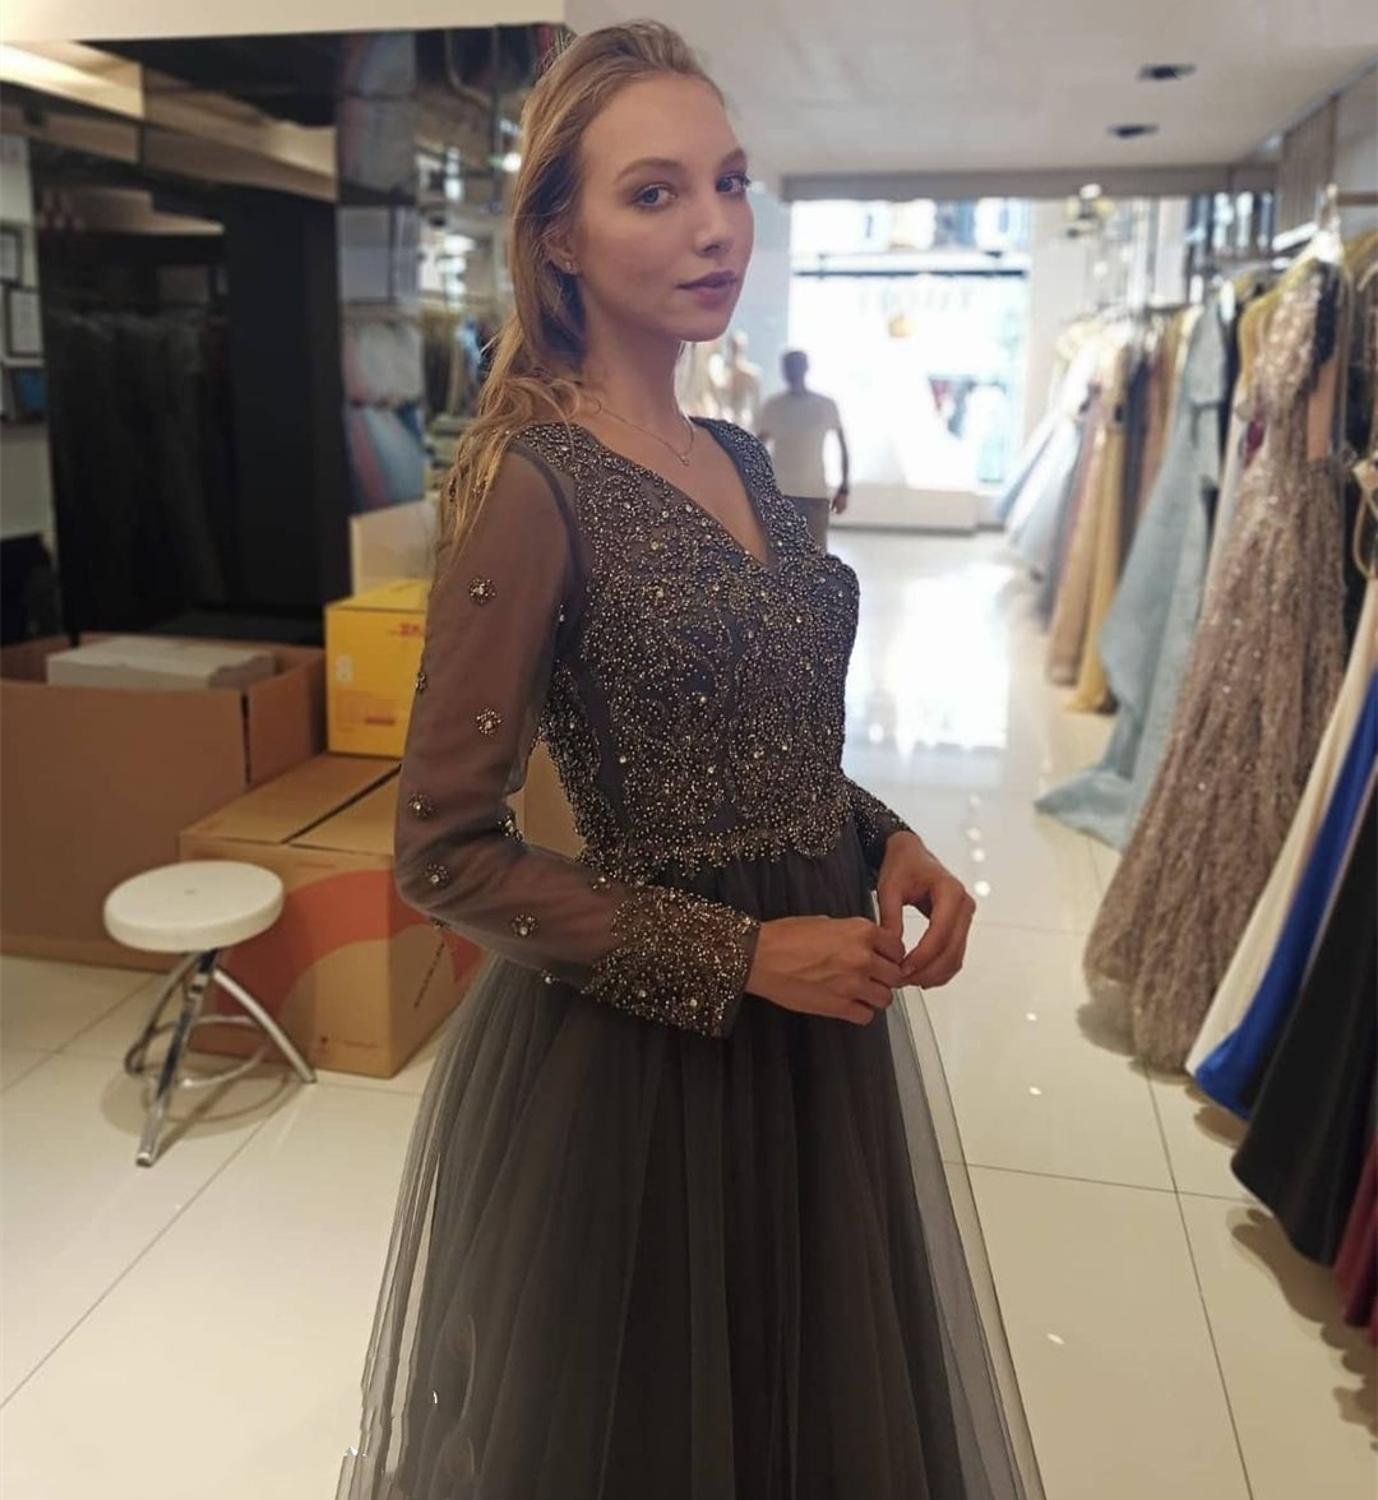 Elegant Prom Dress Gray Long Sleeve A-Line Crystal Beaded Sexy V-Neck Tulle Floor Length Women Formal Party Gowns Brilliant